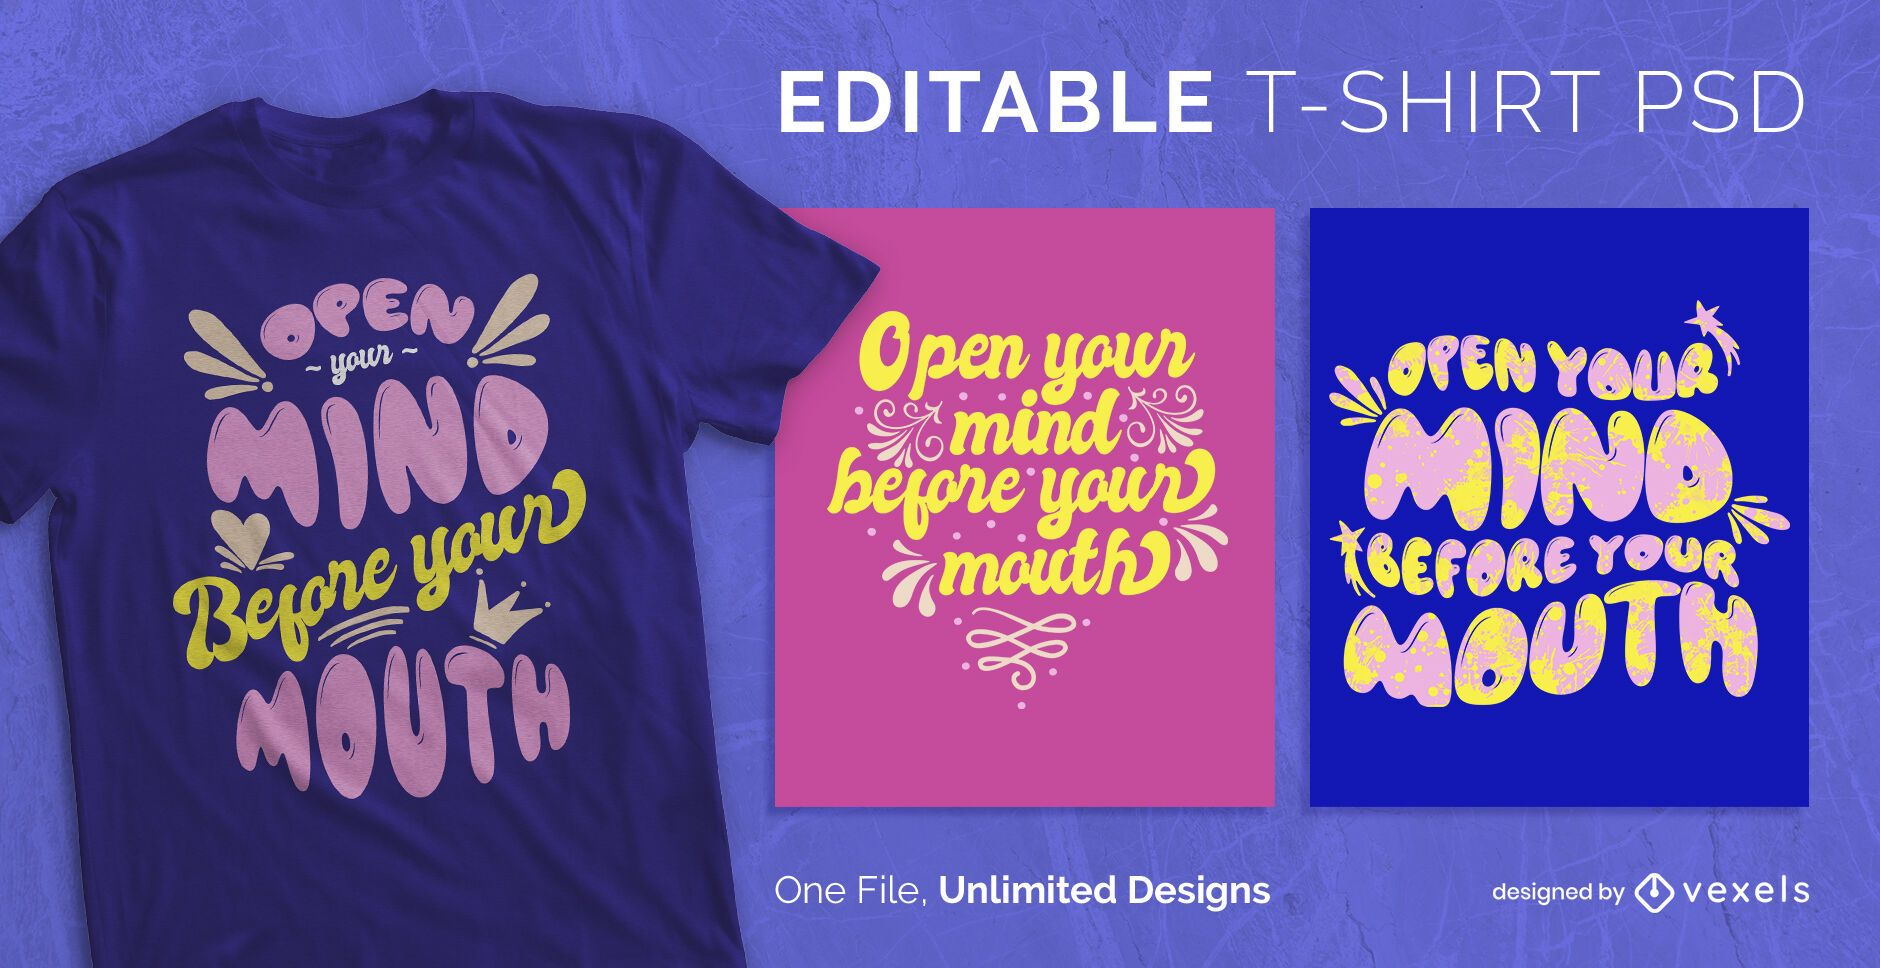 Lettering ornaments scalable t-shirt psd